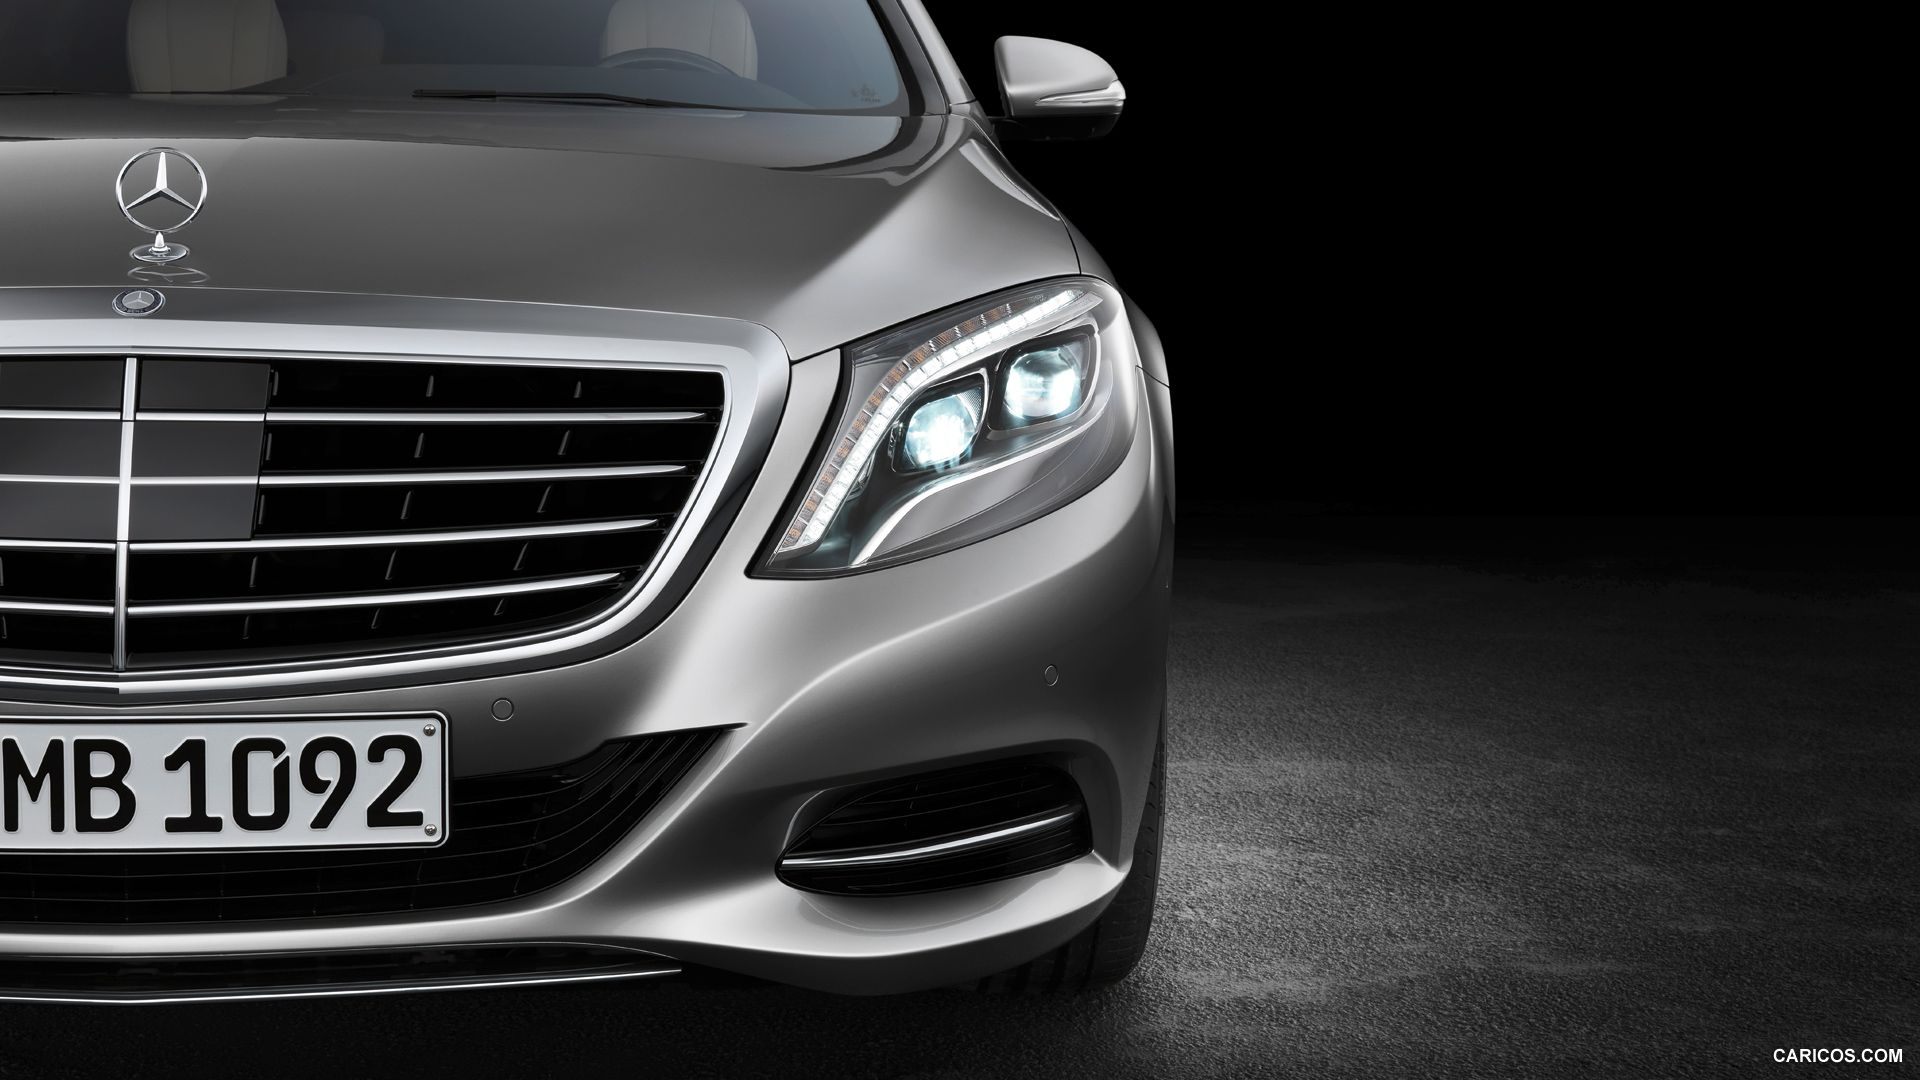 Download Mercedes Benz S Class Hd Wallpapers 1080P Gif